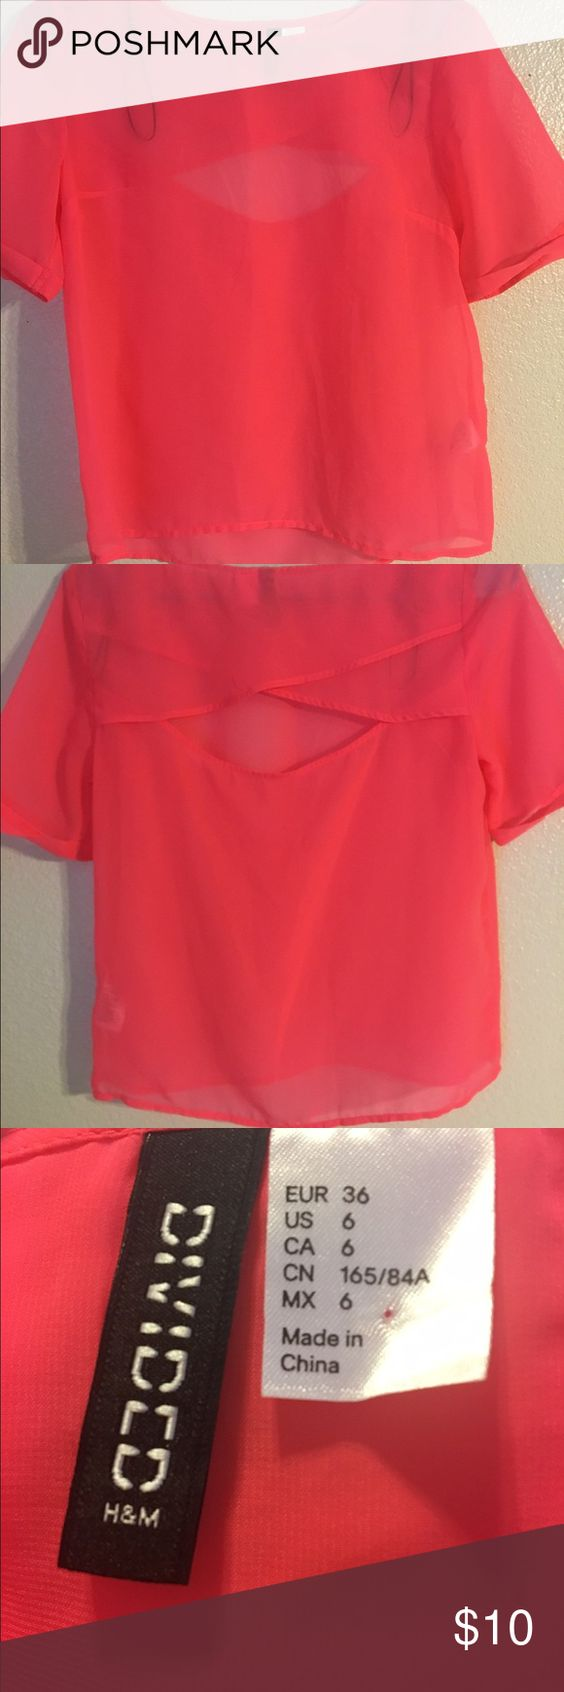 Loose pink shirt Open back shirt. Very cute and very loose. Worn once with no stains. H&M Tops Blouses